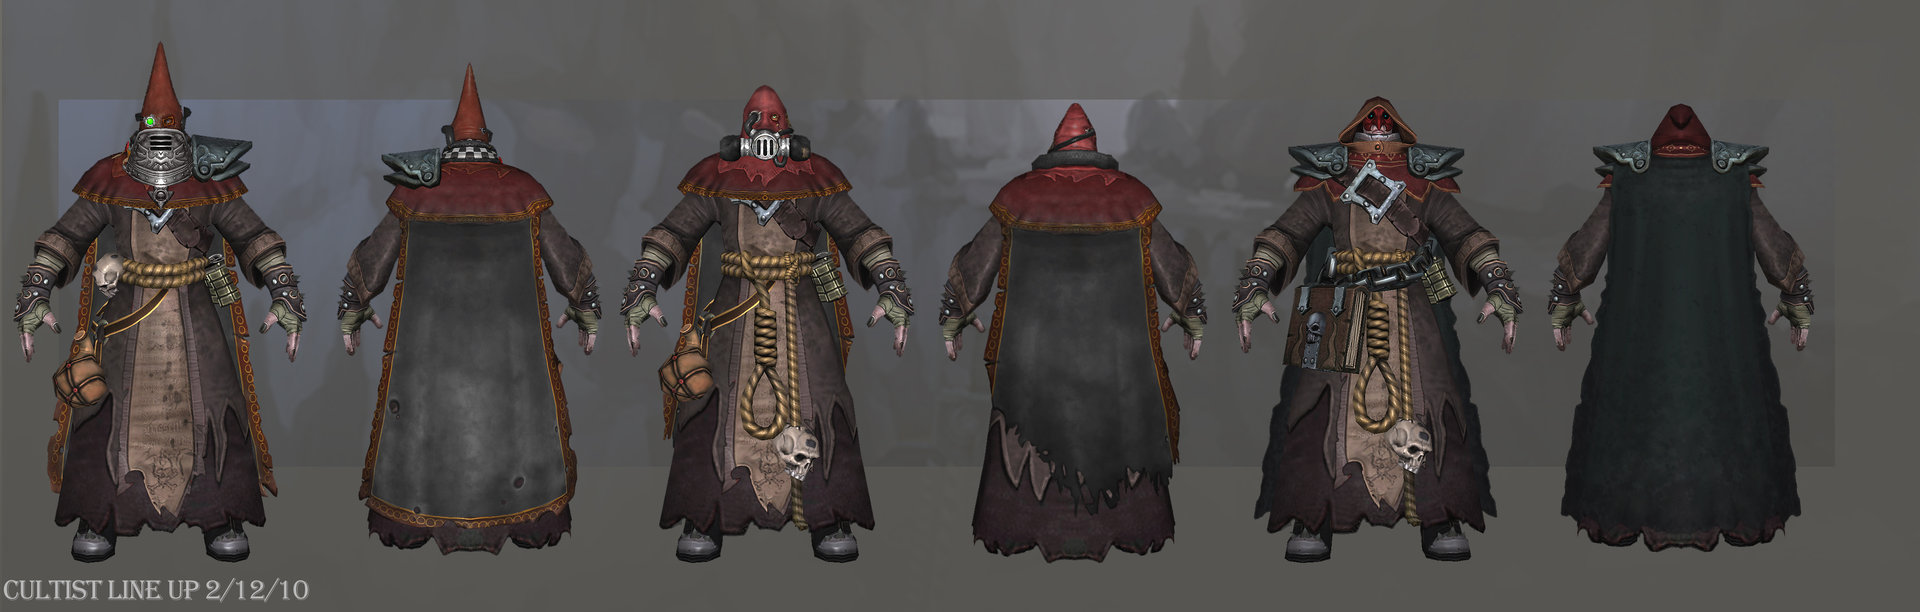 Cultist lineup